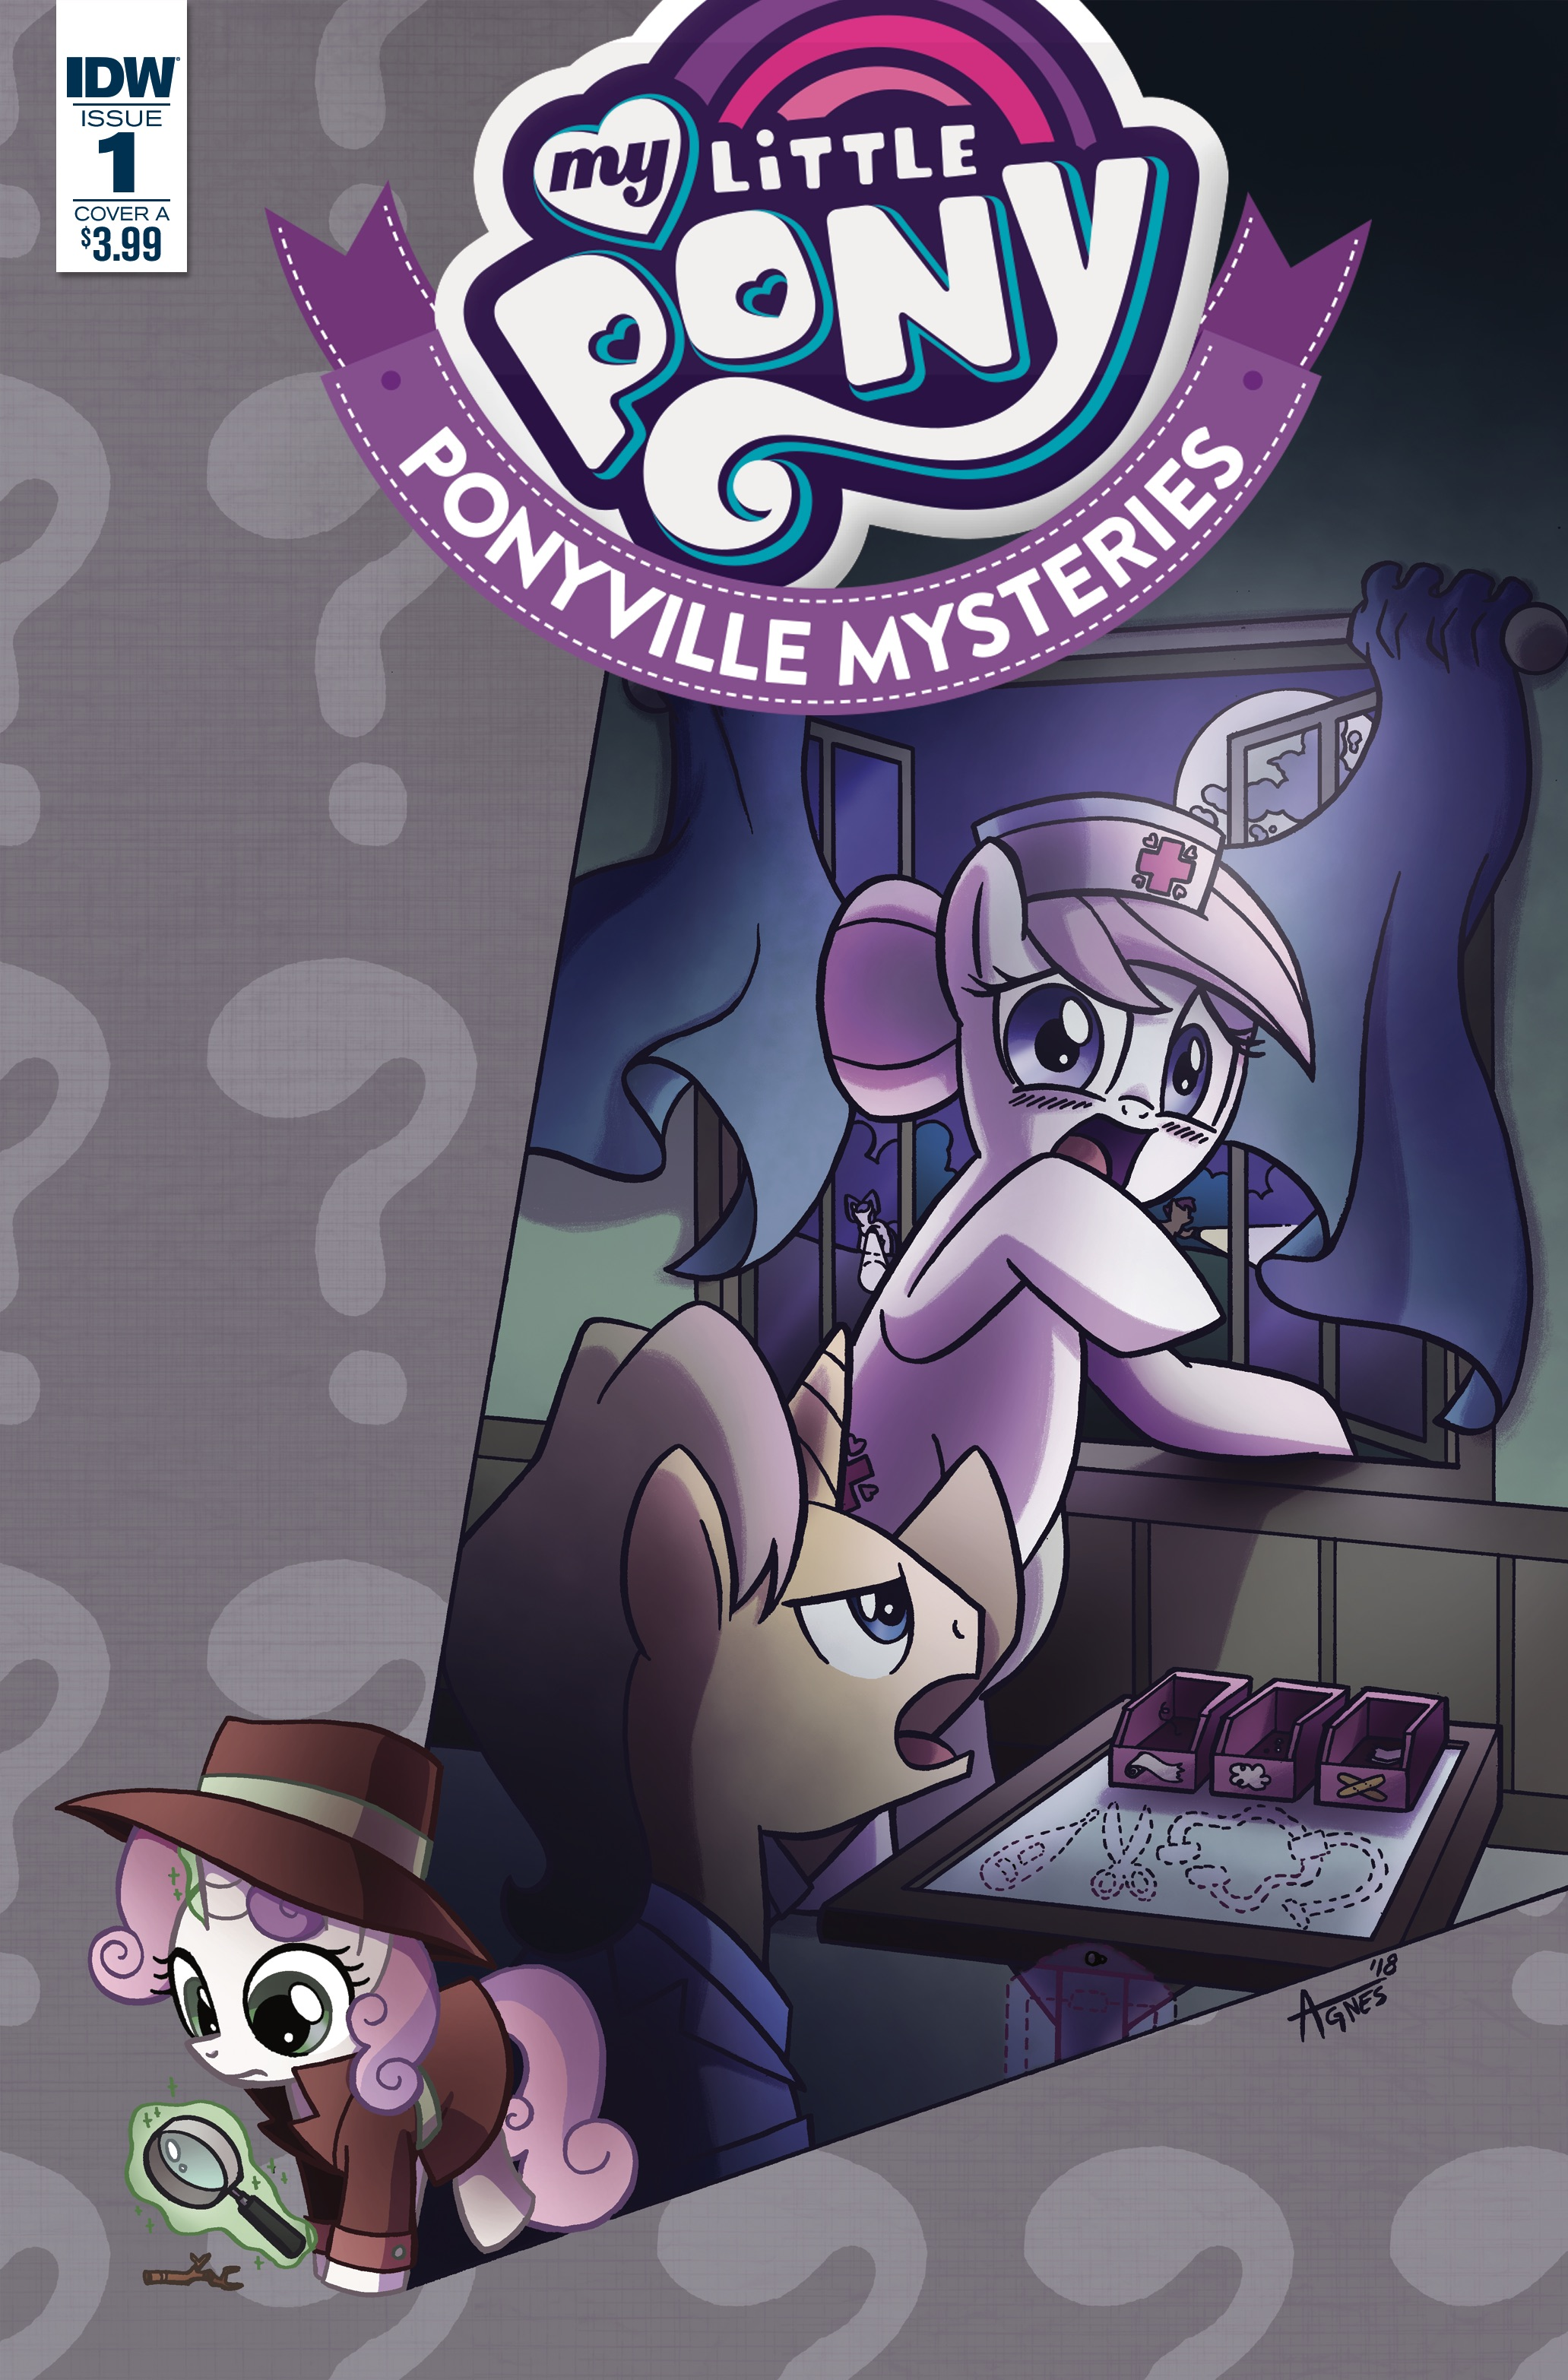 My Little Pony Friendship is Magic #34 1:10 Variant